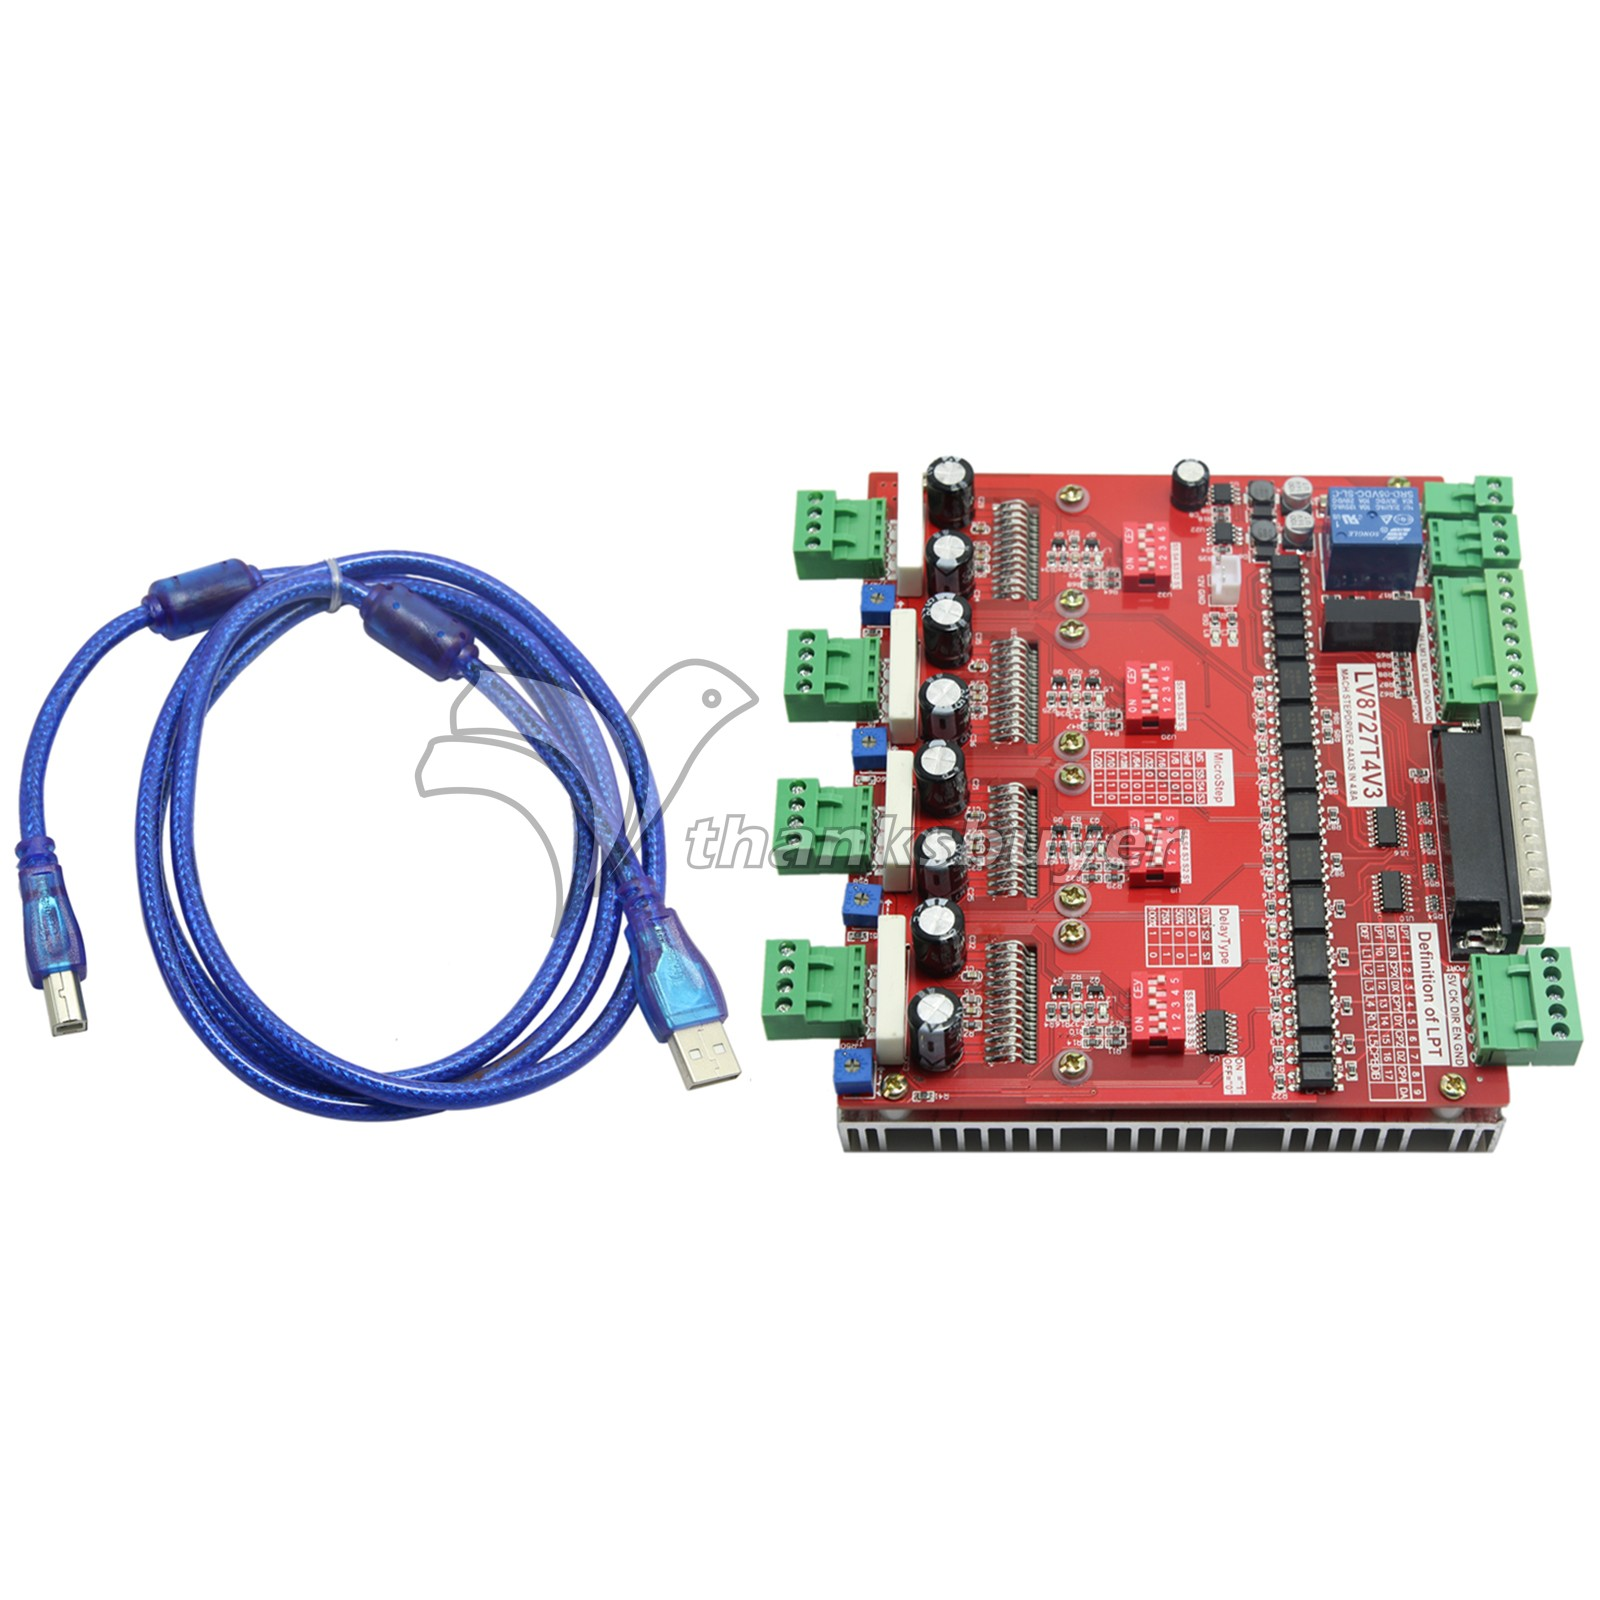 ФОТО LV8727 CNC Four Axis 4 Axis Stepper Motor Driver Controller Board w/ DB25 Parallel Cable for MACH3 KCAM4